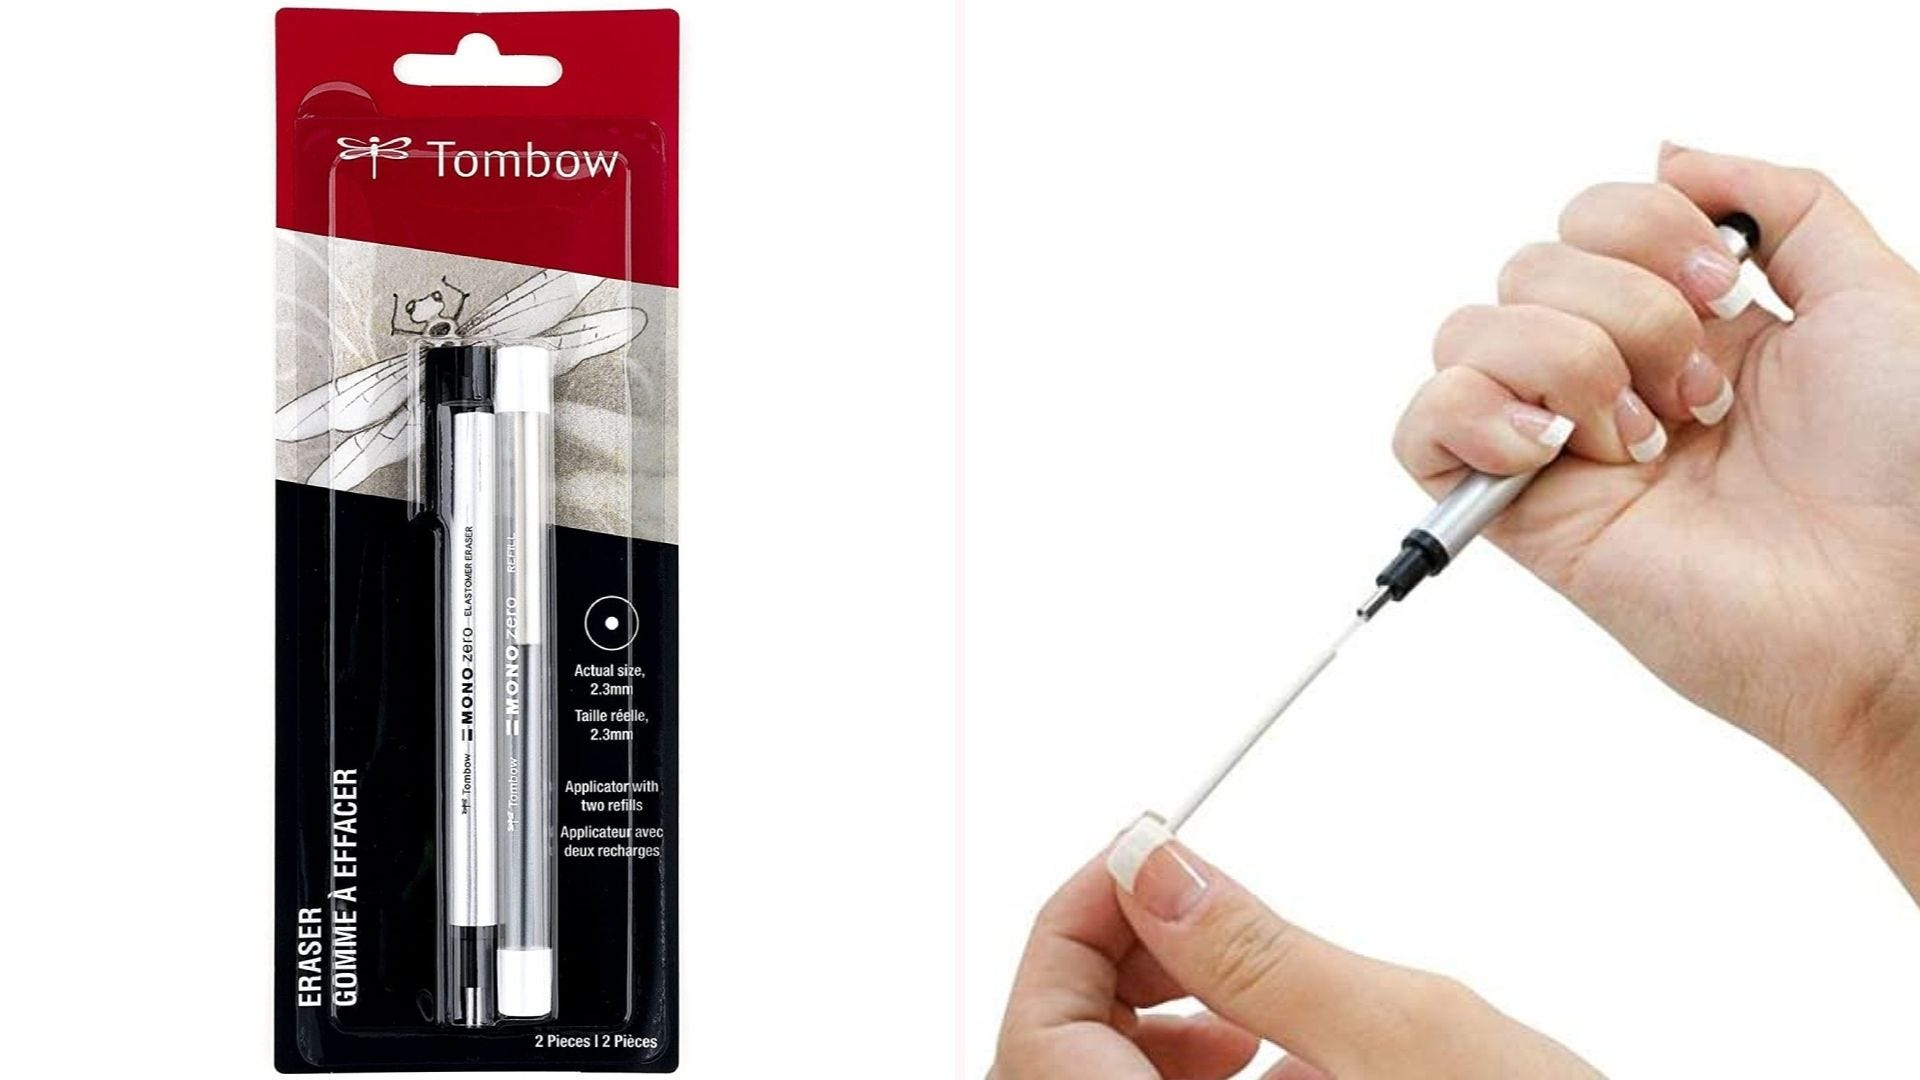 On the left, a pen-style eraser in its black and red packaging. On the right, a person refilling the tube with an eraser refill.